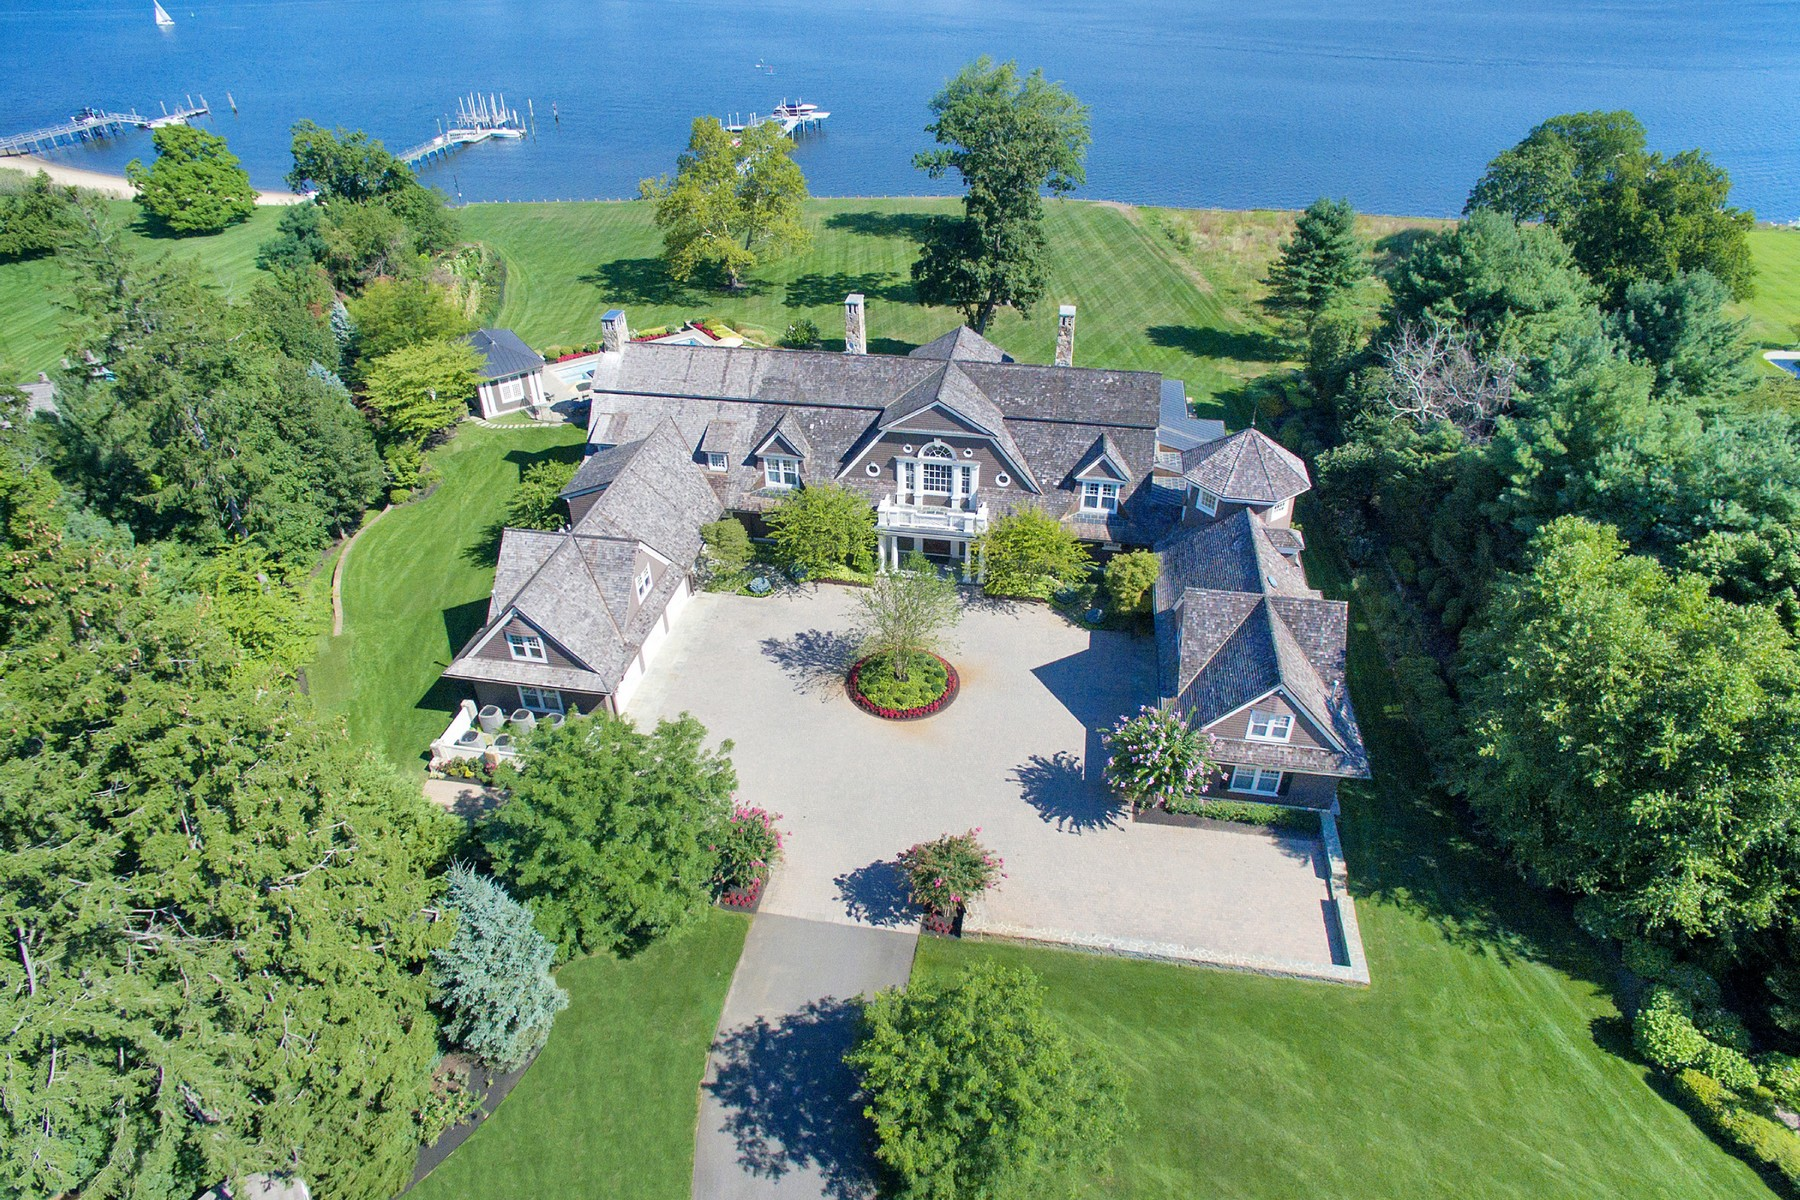 Villa per Vendita alle ore Riverblades Estate 74 West River Road Rumson, New Jersey, 07760 Stati Uniti